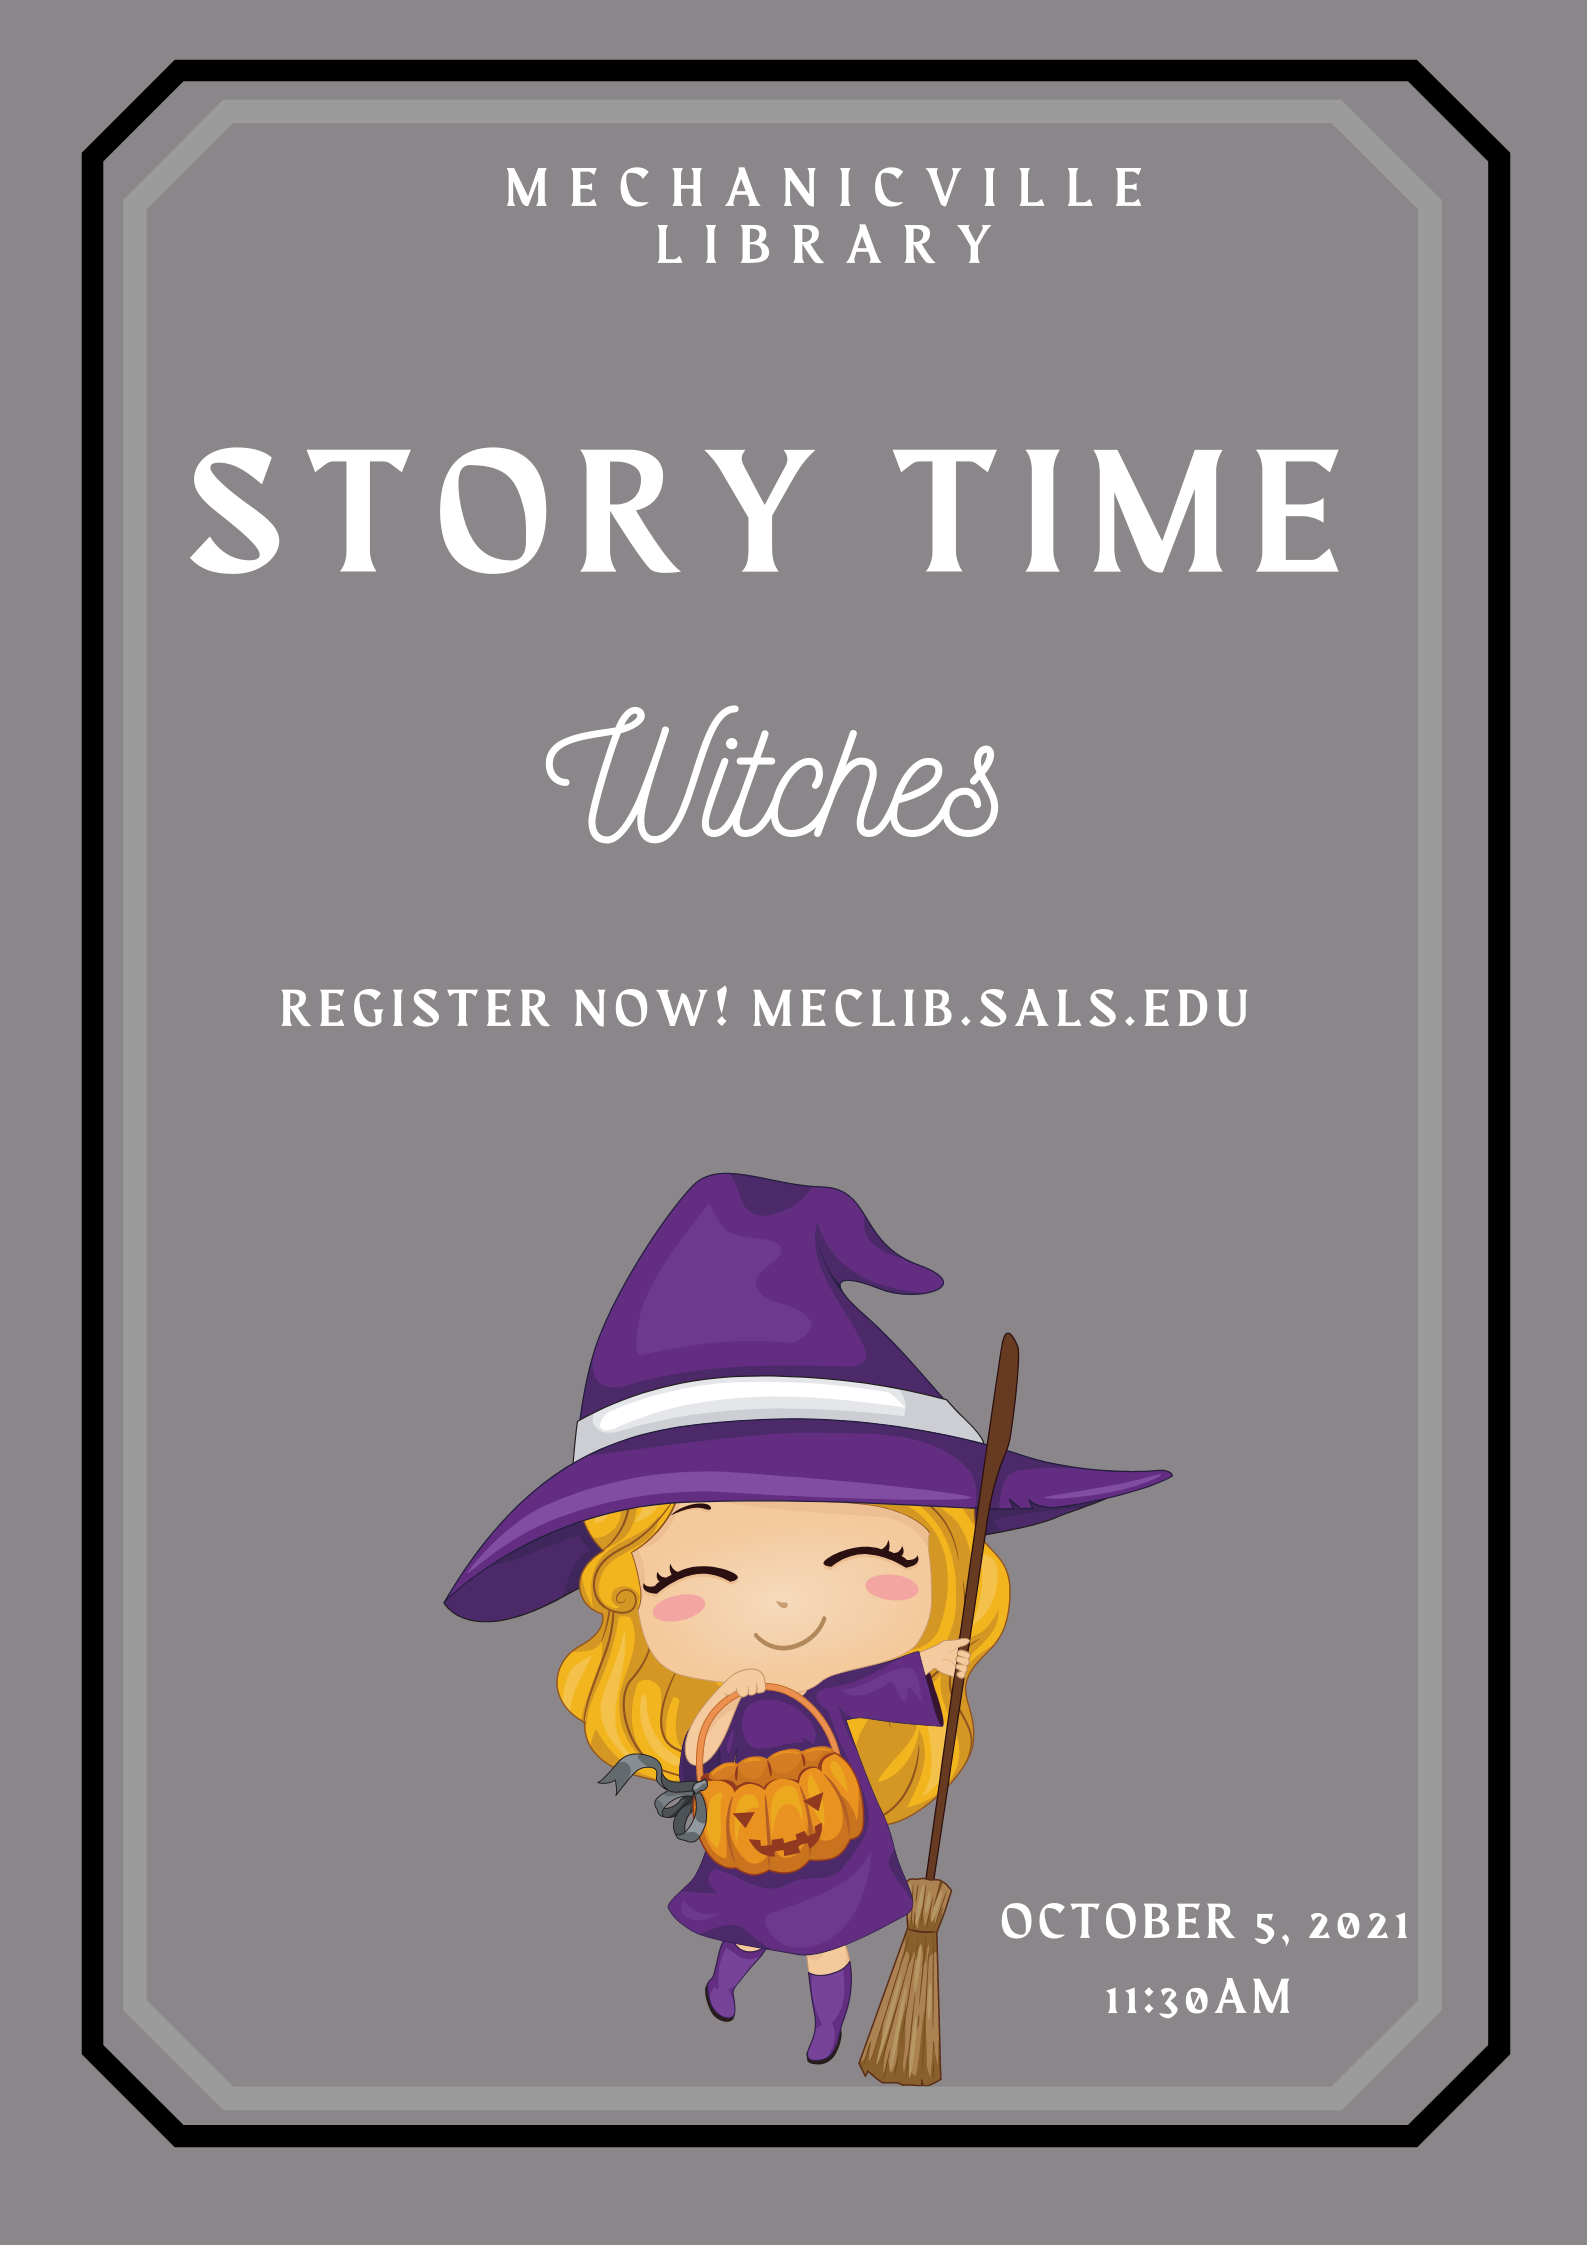 Story Time: Witches @ Mechanicville District Public Library | Mechanicville | New York | United States